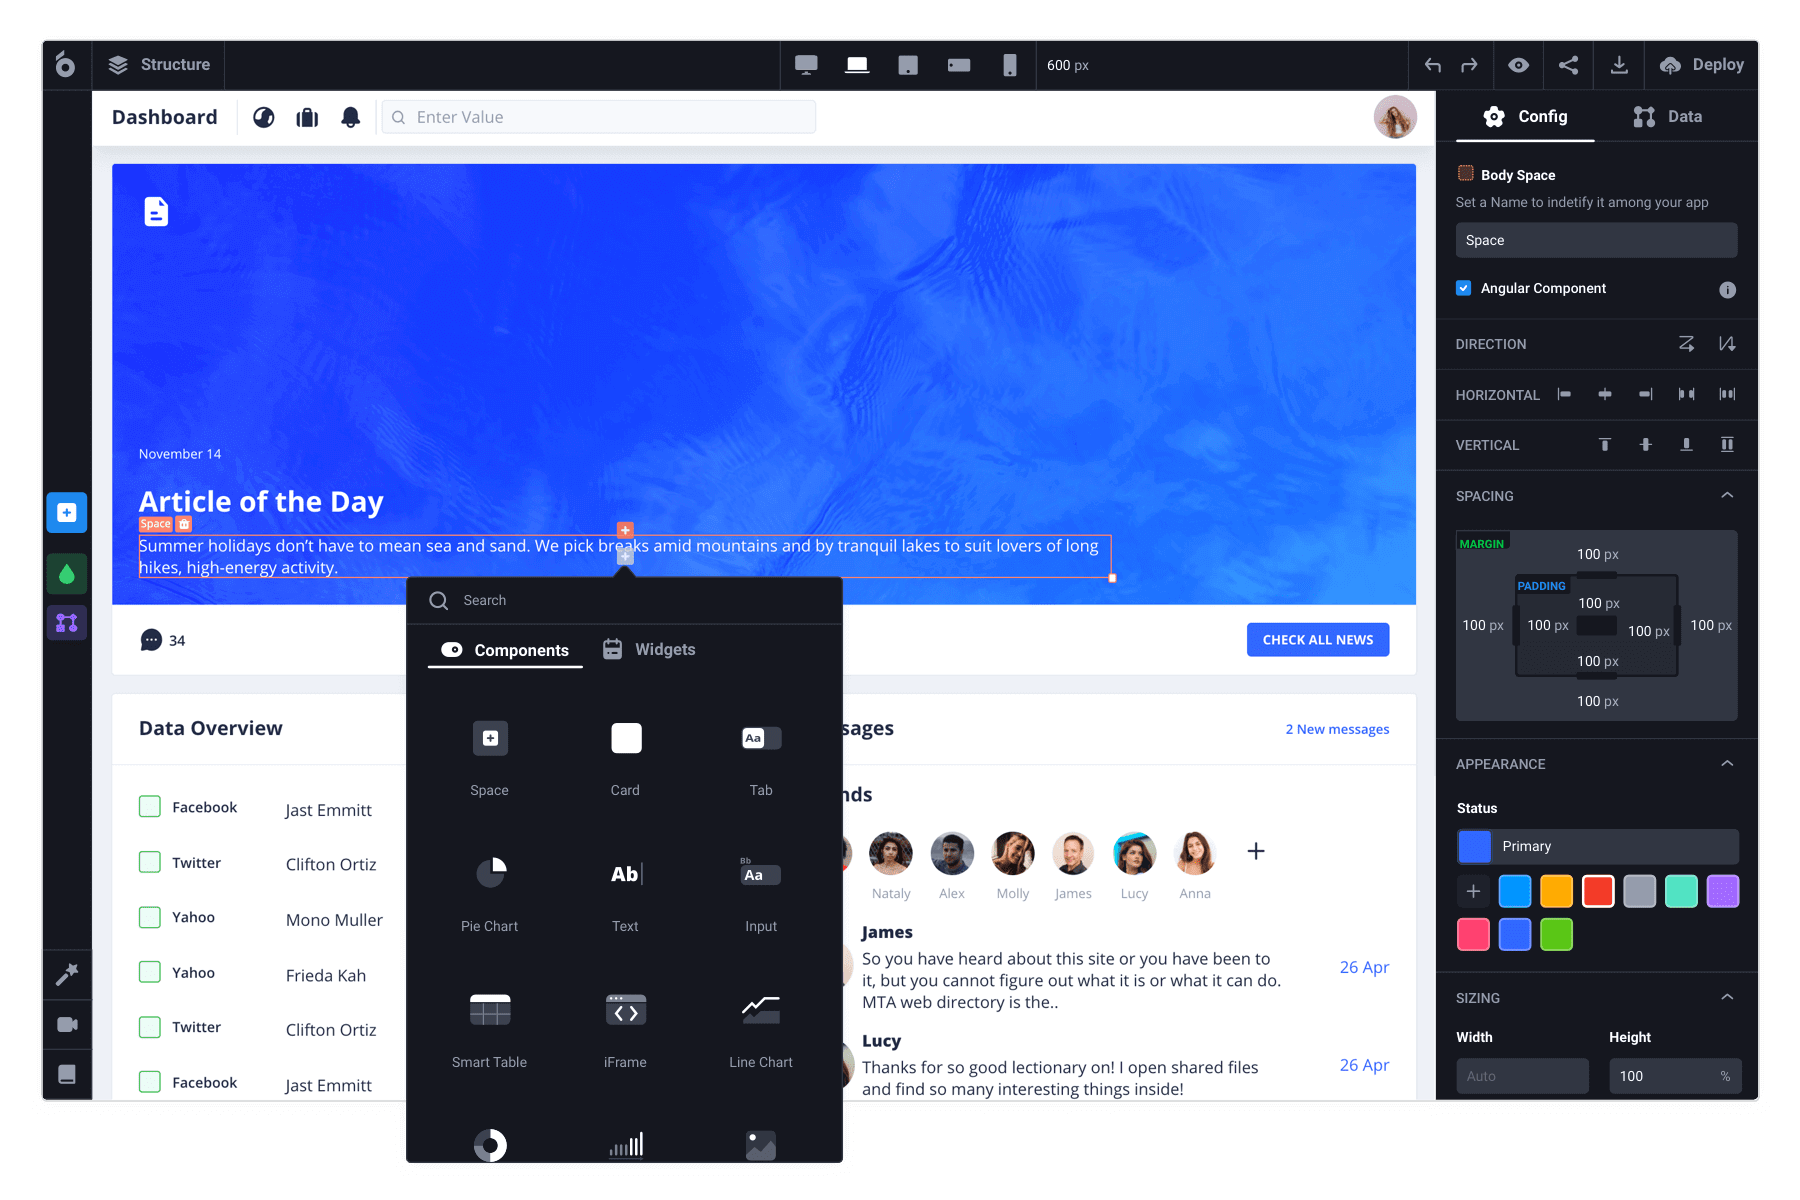 Low code development platform for building web apps with predefined UI components and widgets